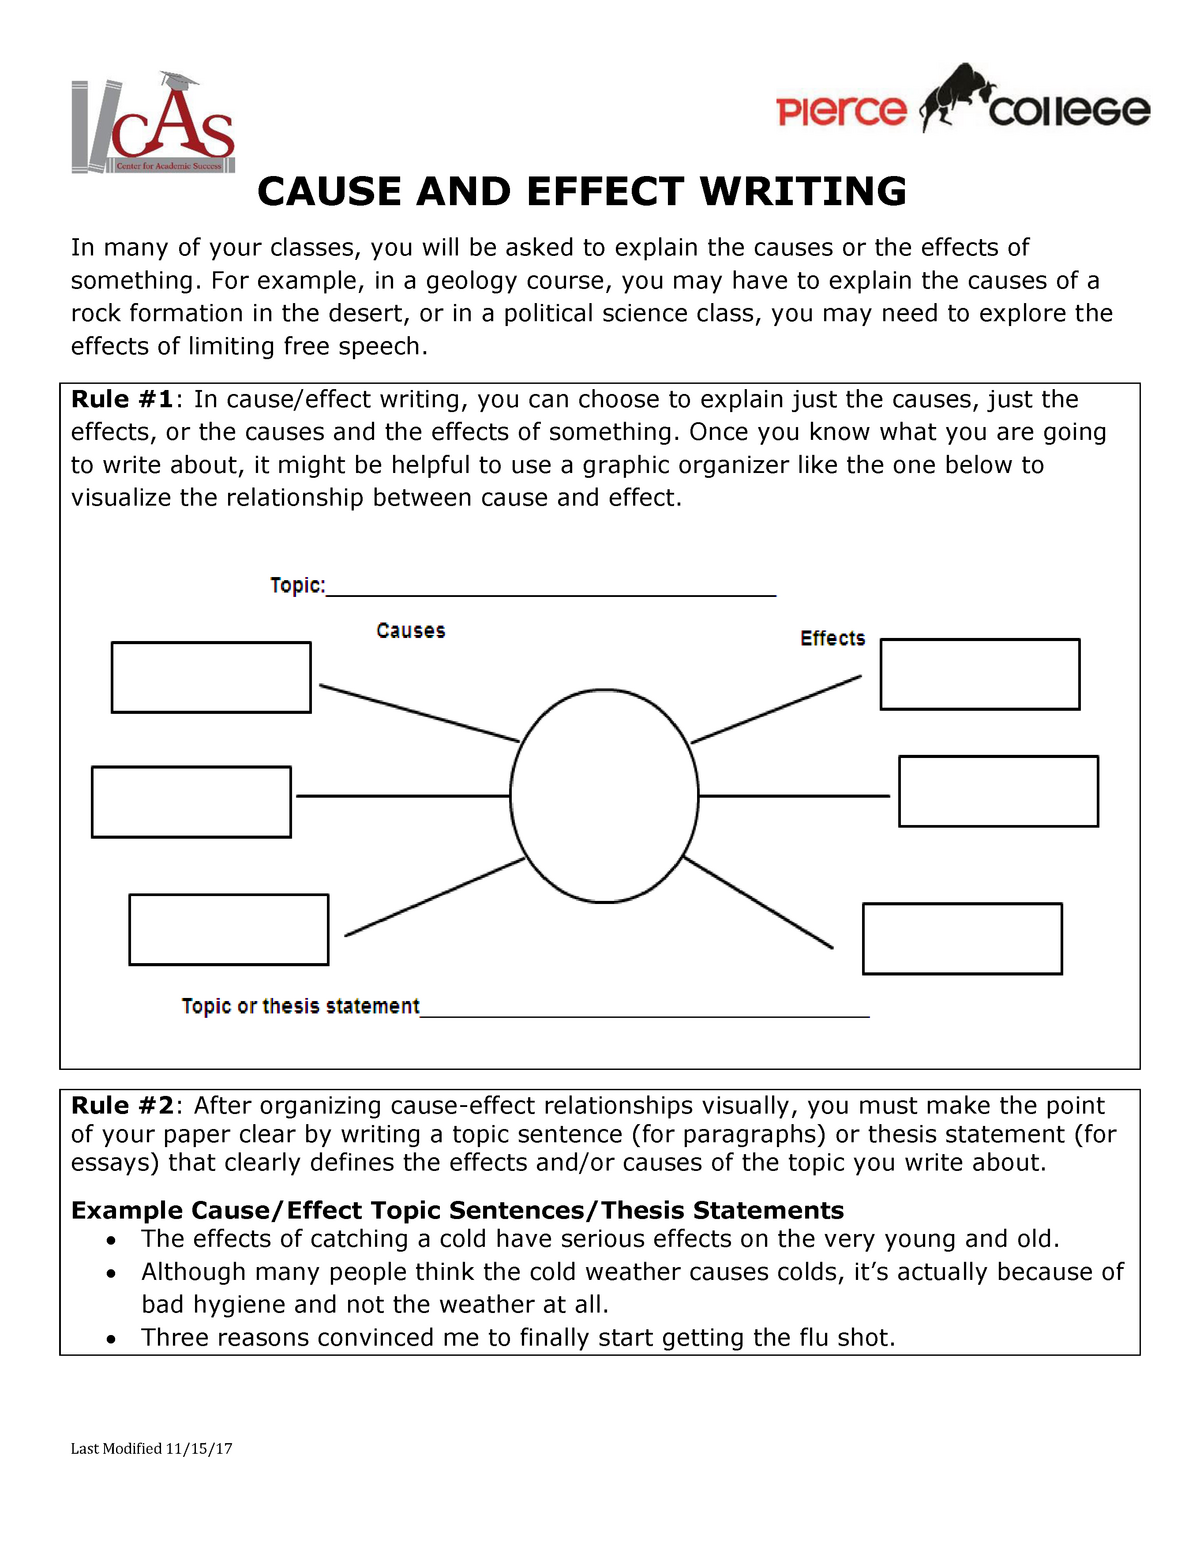 How to write a cause and effect paper